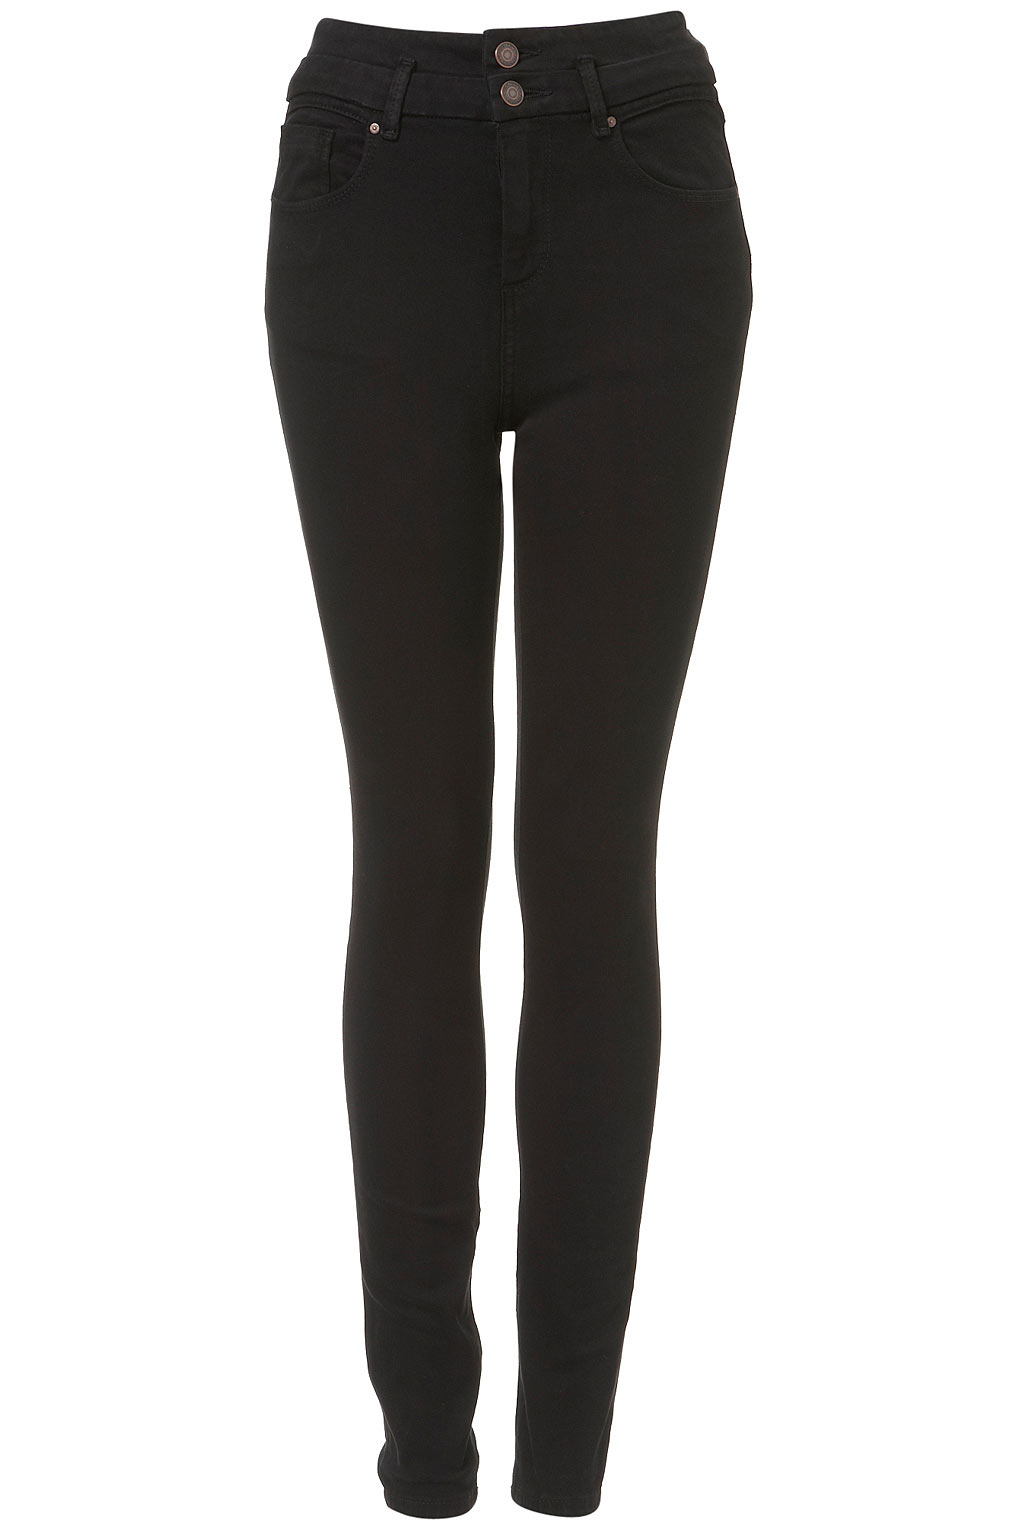 moto-black-moto-high-waist-skinny-jeans-product-1-4395858-098529907.jpeg